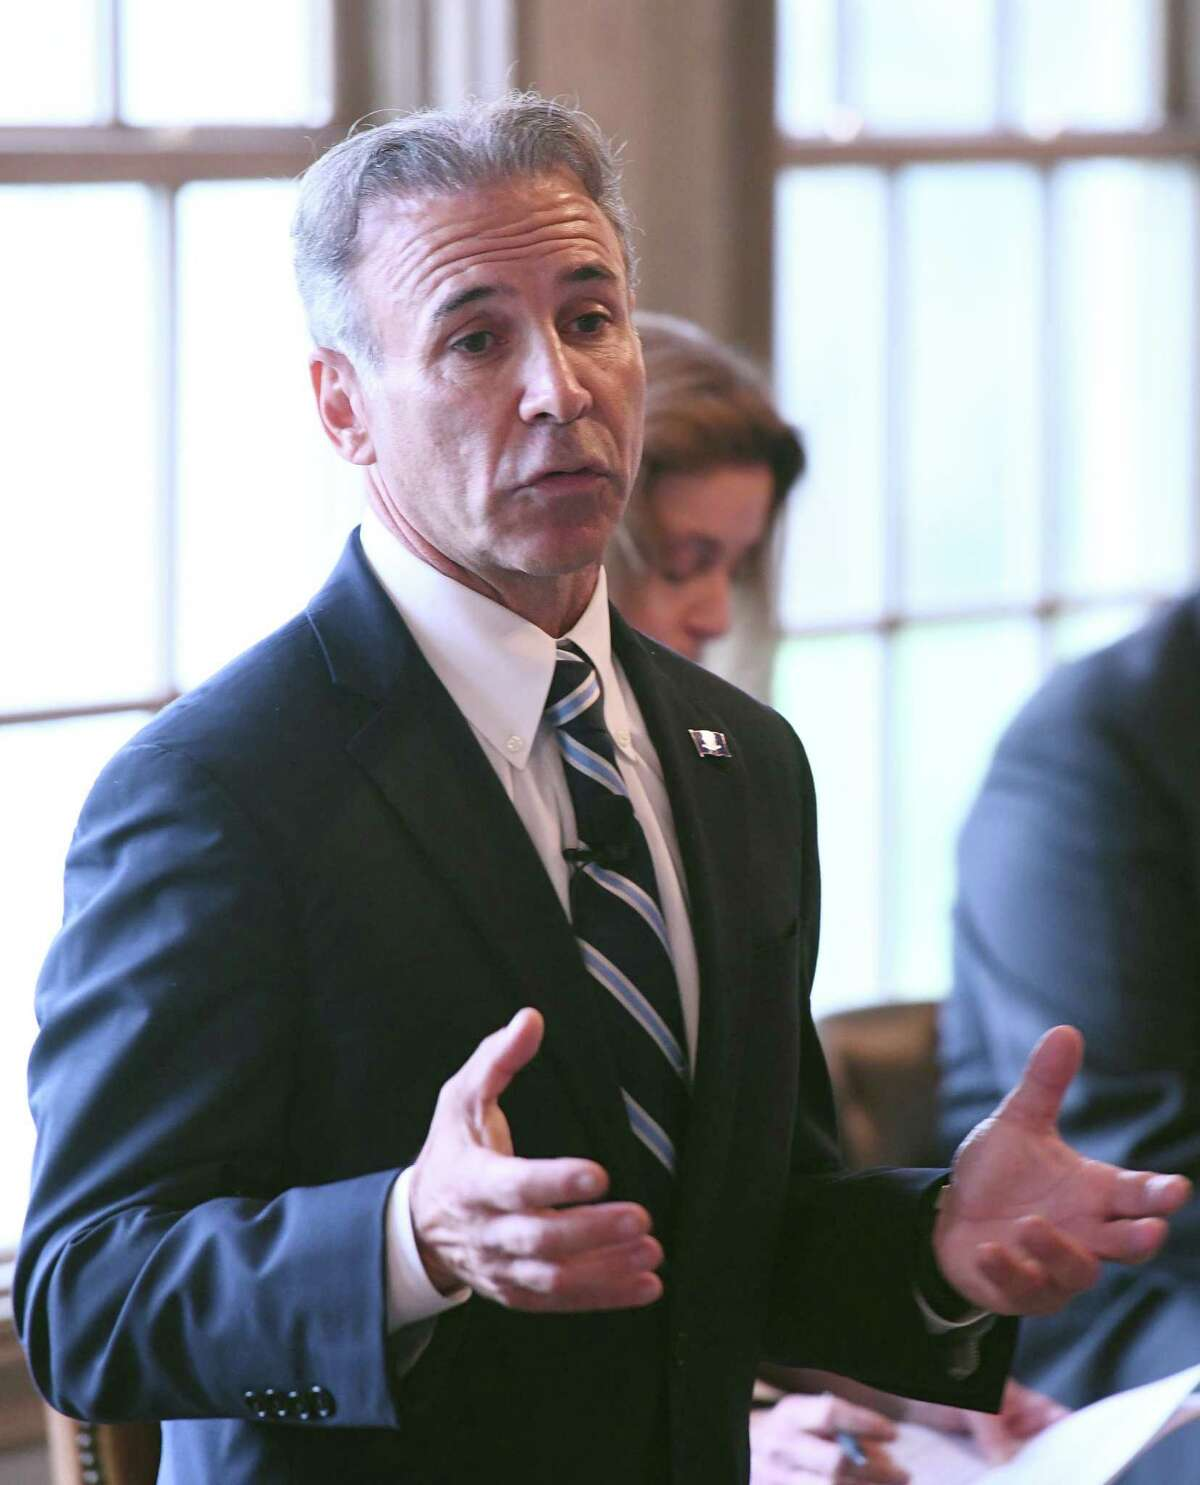 First Selectman Fred Camillo has announced new restrictions on town employees traveling out of state on official business to try and stop the spread of coronavirus.